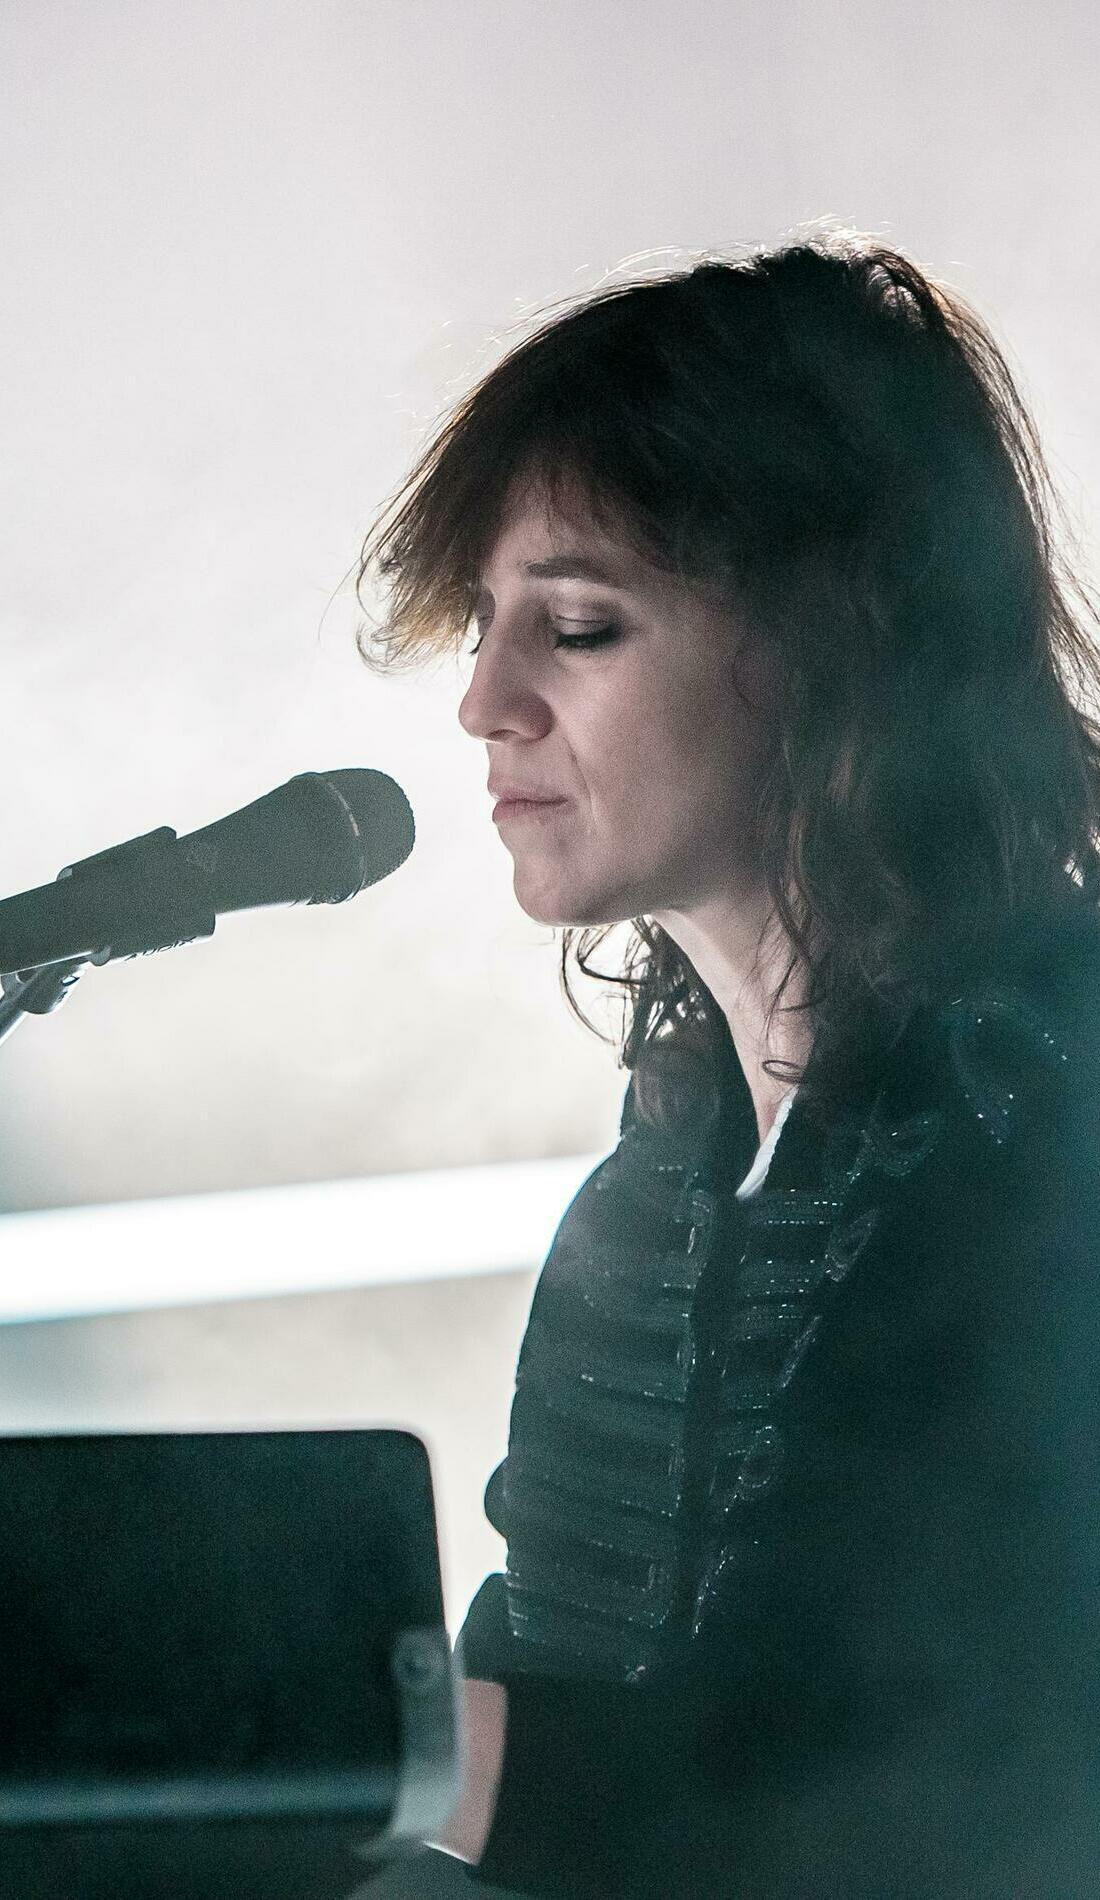 A Charlotte Gainsbourg live event